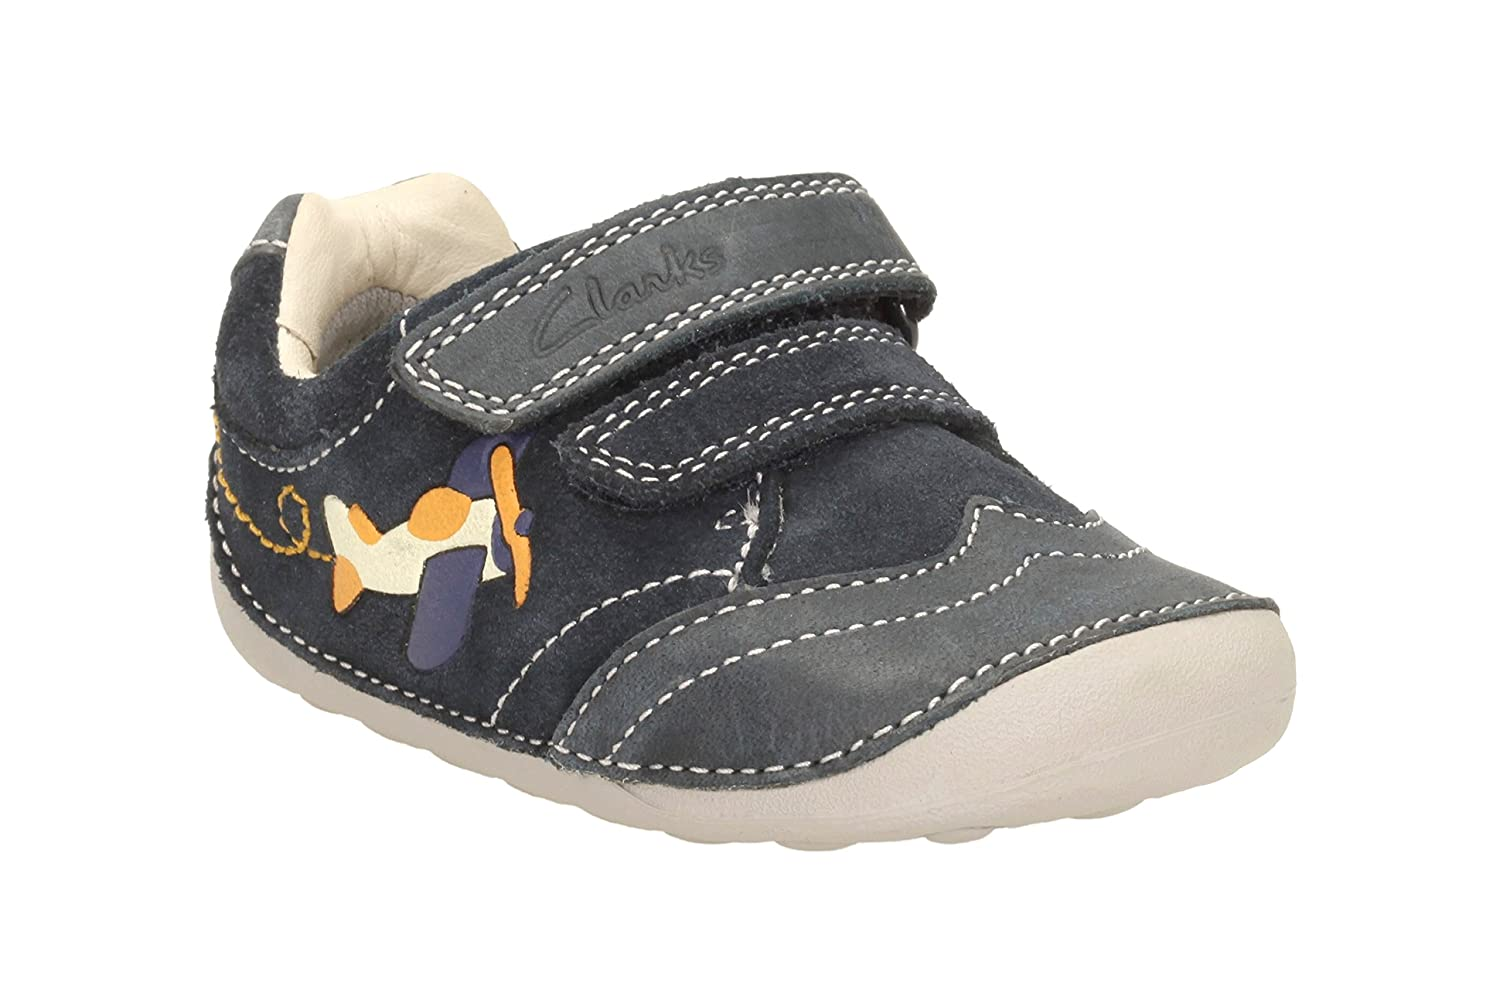 authentic quality highly coveted range of arriving Clarks Baby Boys' Tiny Liam First Shoes - Sneakers: Amazon ...